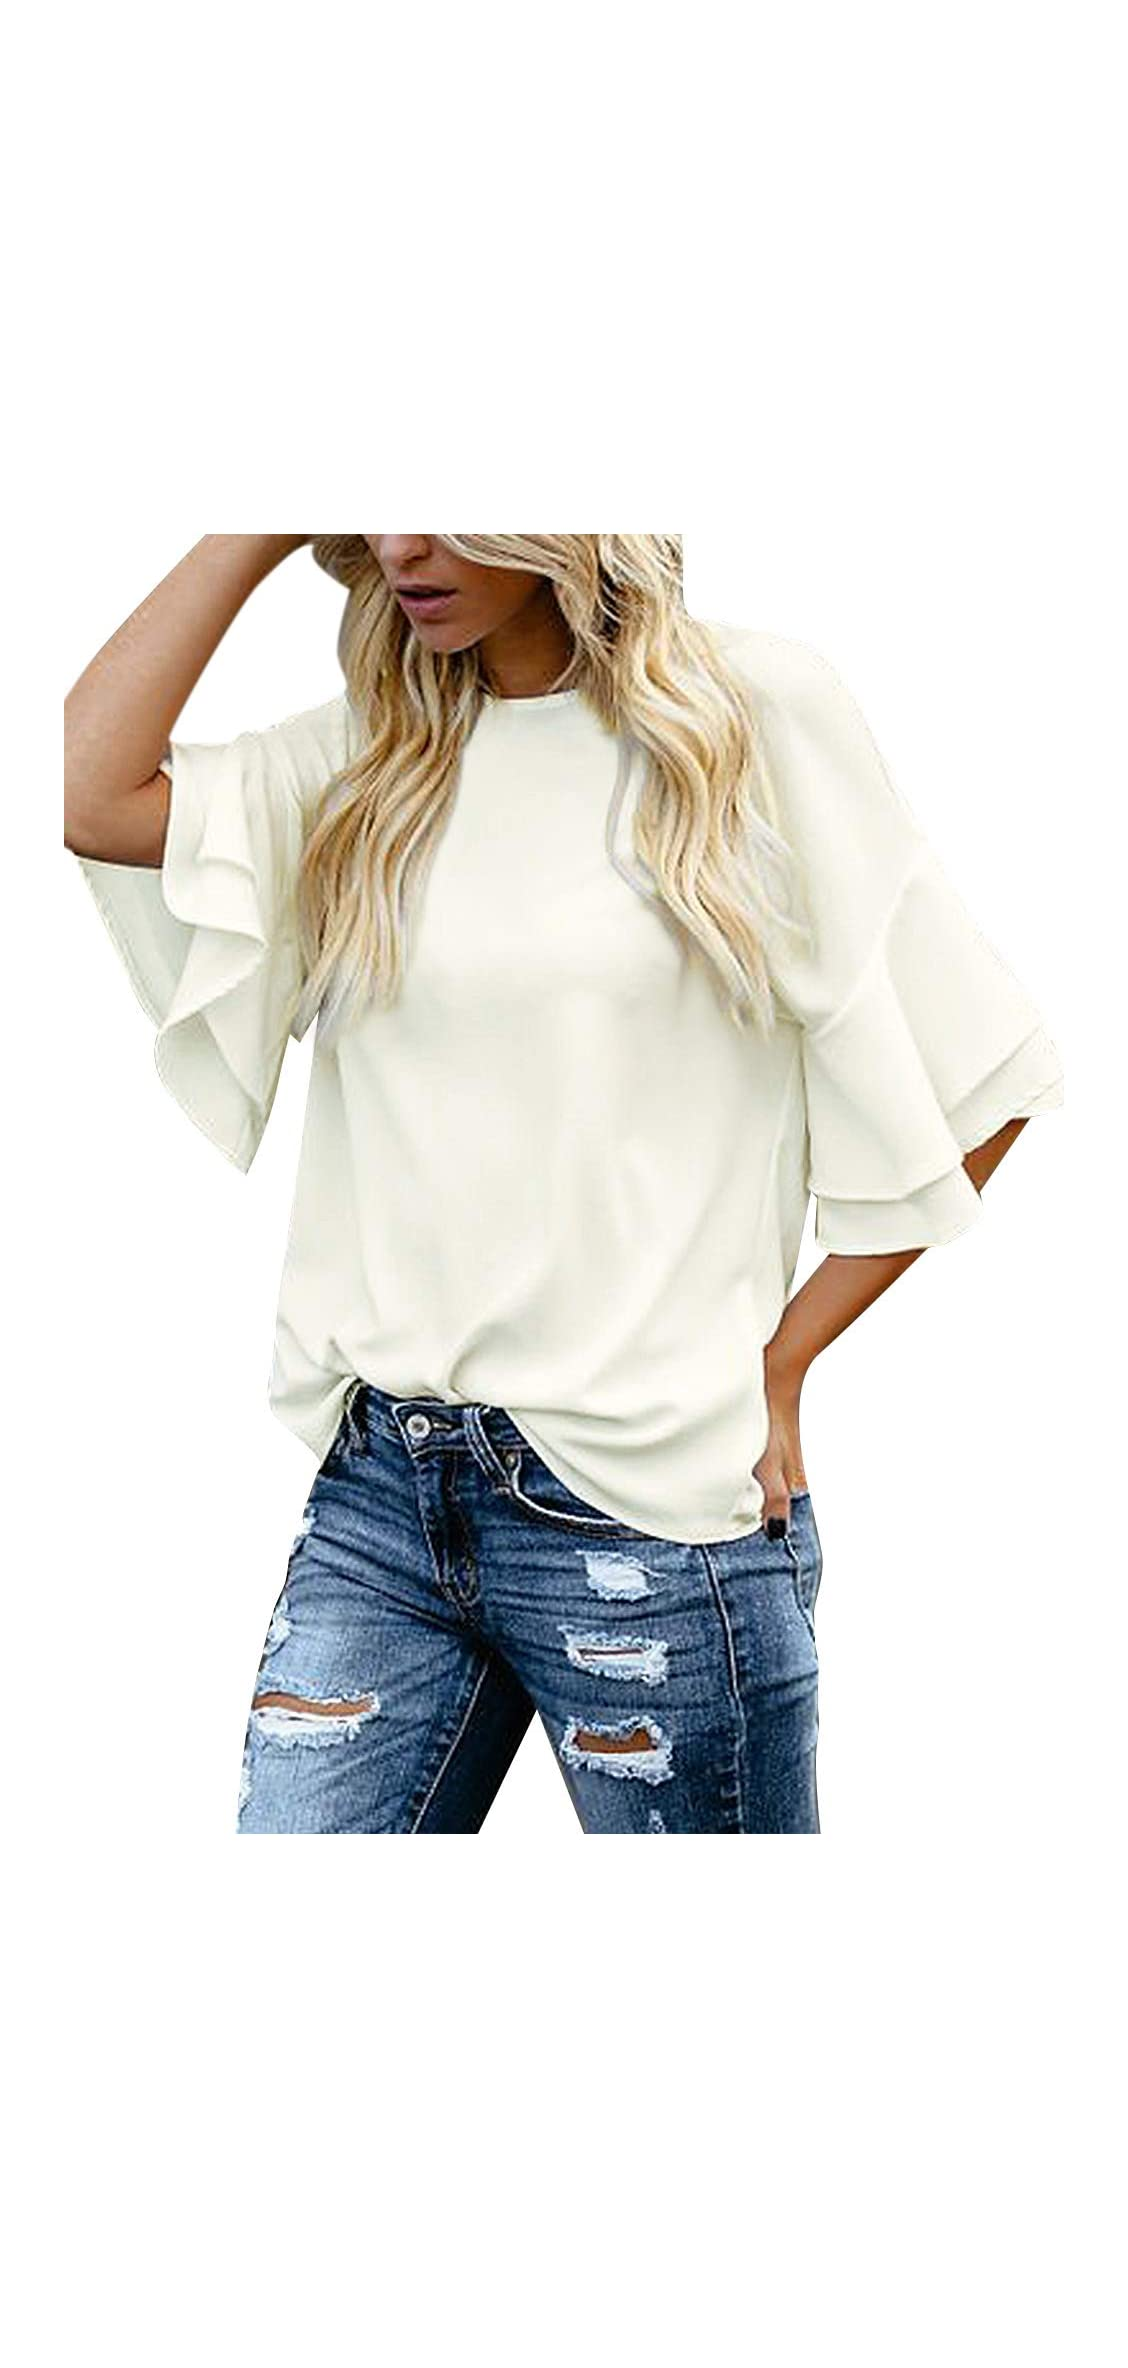 Women's Casual / Tiered Bell Sleeve Crewneck Loose